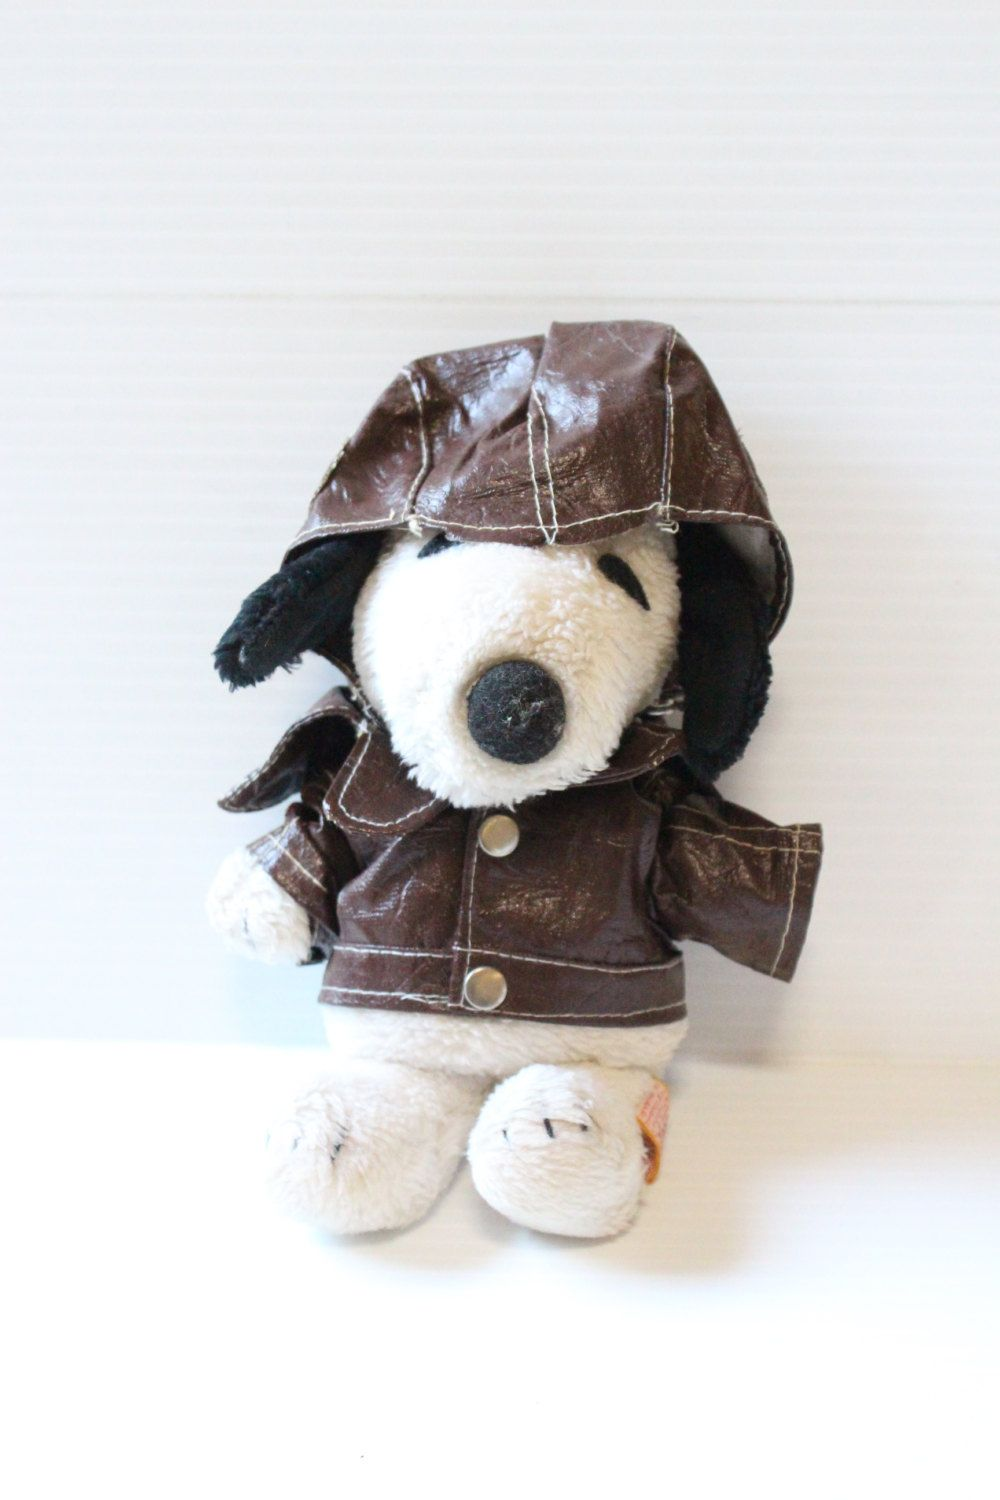 Snoopy Flying Ace Peanuts Plush Vintage Peanuts Character 1968